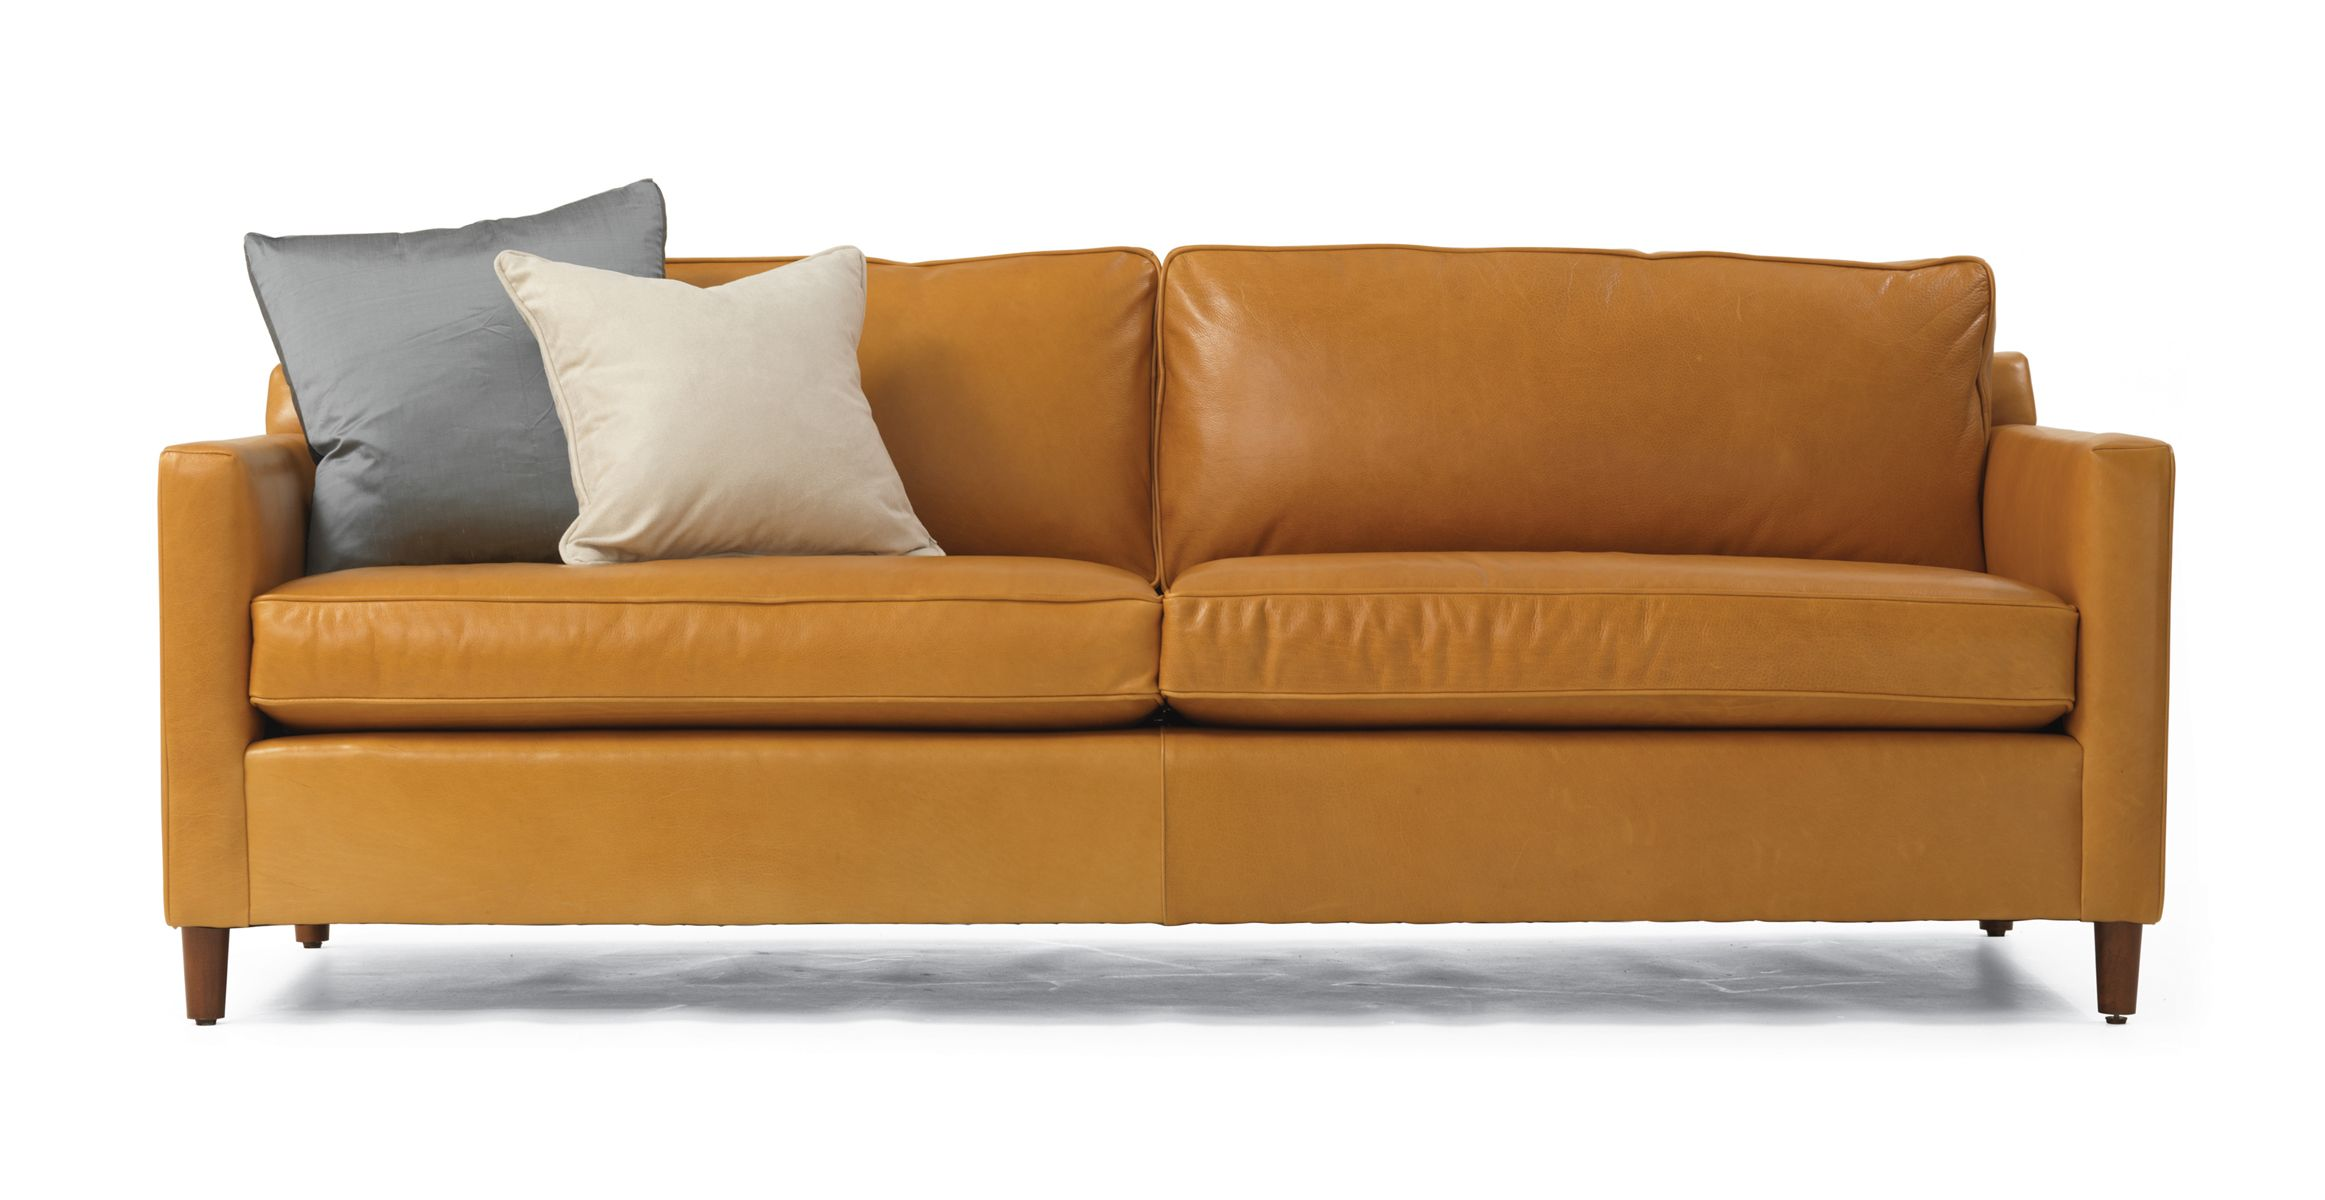 fy excellent furniture room with fill sofa for discount bed about of bob living your bobs sofas